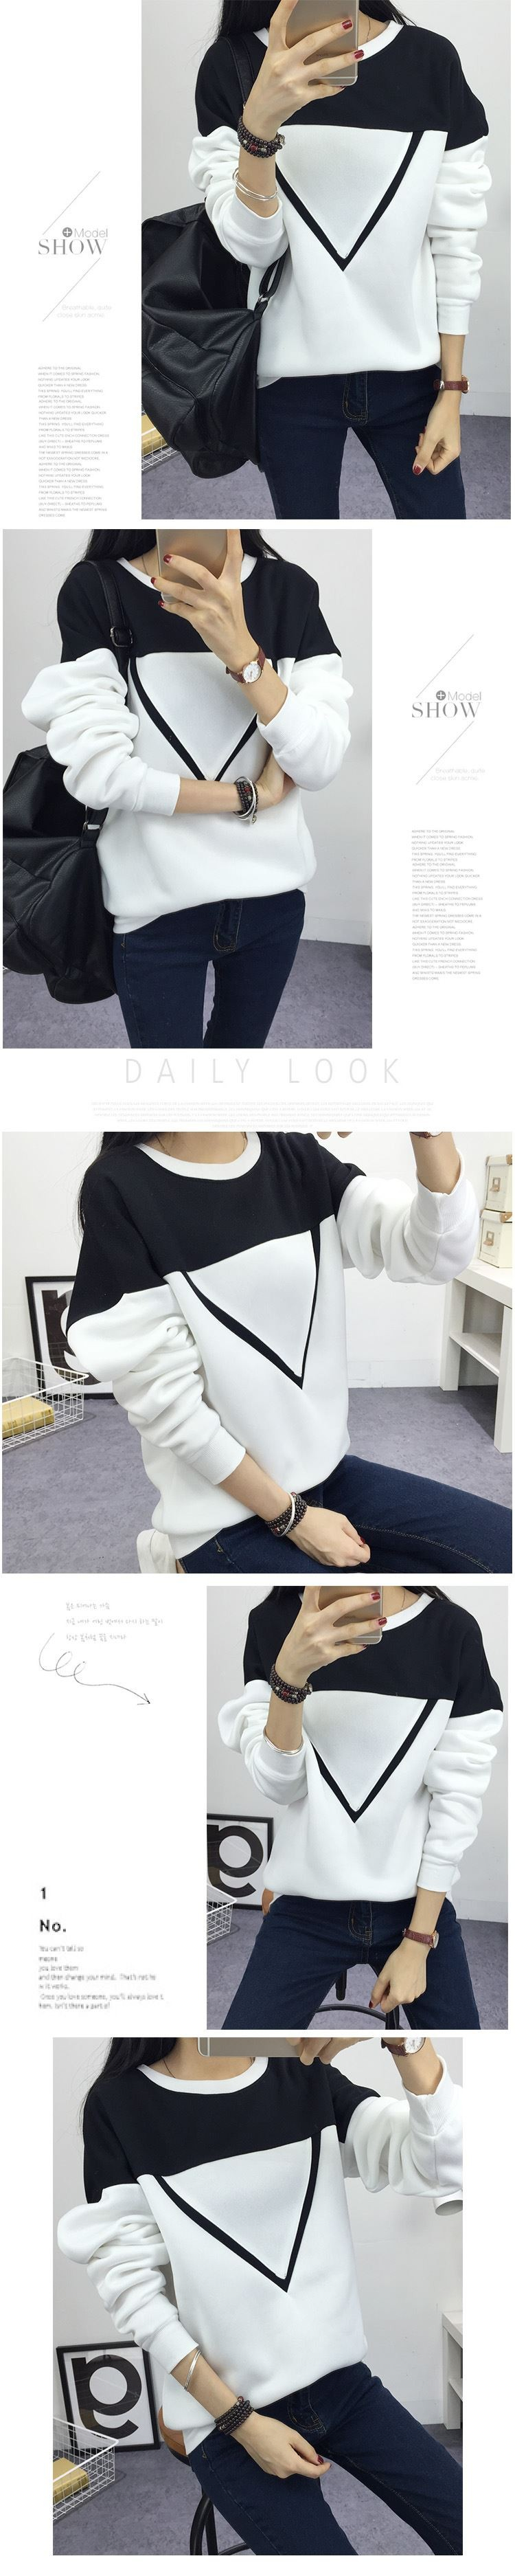 19 Winter New Fashion Black and White Spell Color Patchwork Hoodies Women V Pattern Pullover Sweatshirt Female Tracksuit M-XXL 11